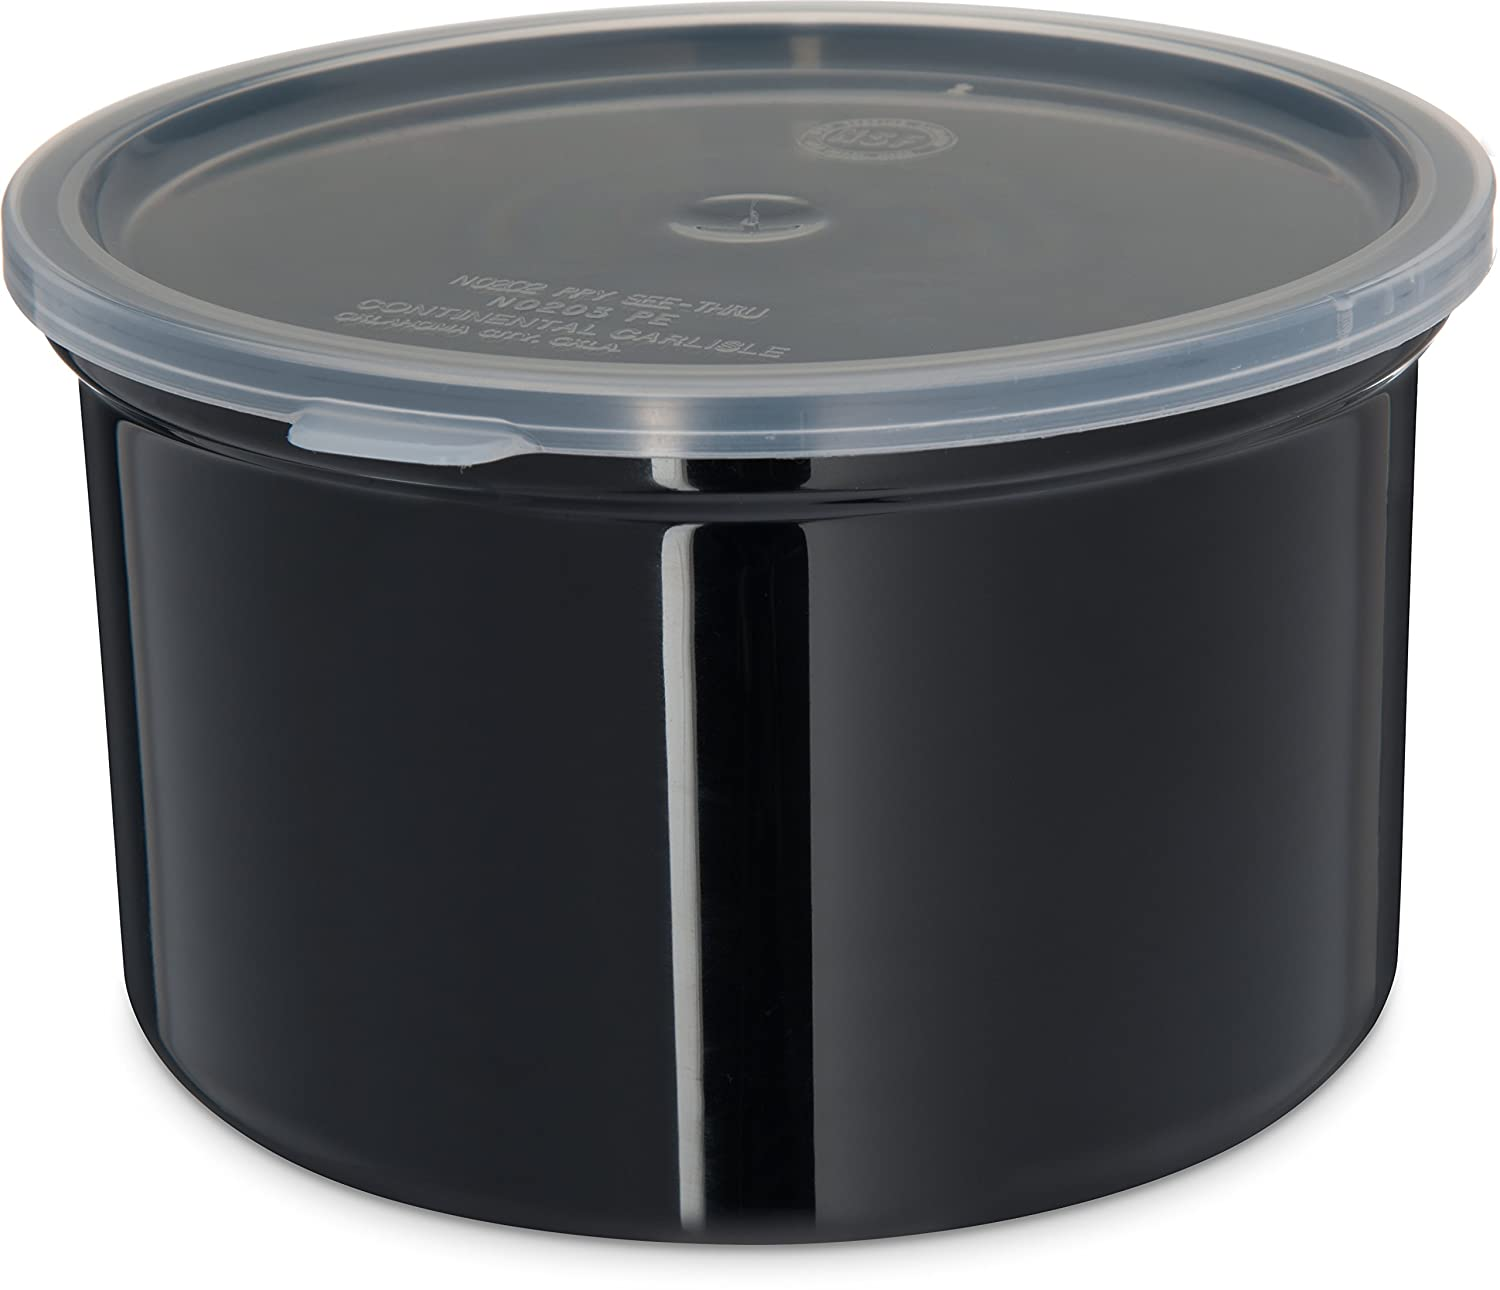 Carlisle 031603 Solid Color Commercial Round Storage Container with Lid, 1.5 Quart Capacity, Black